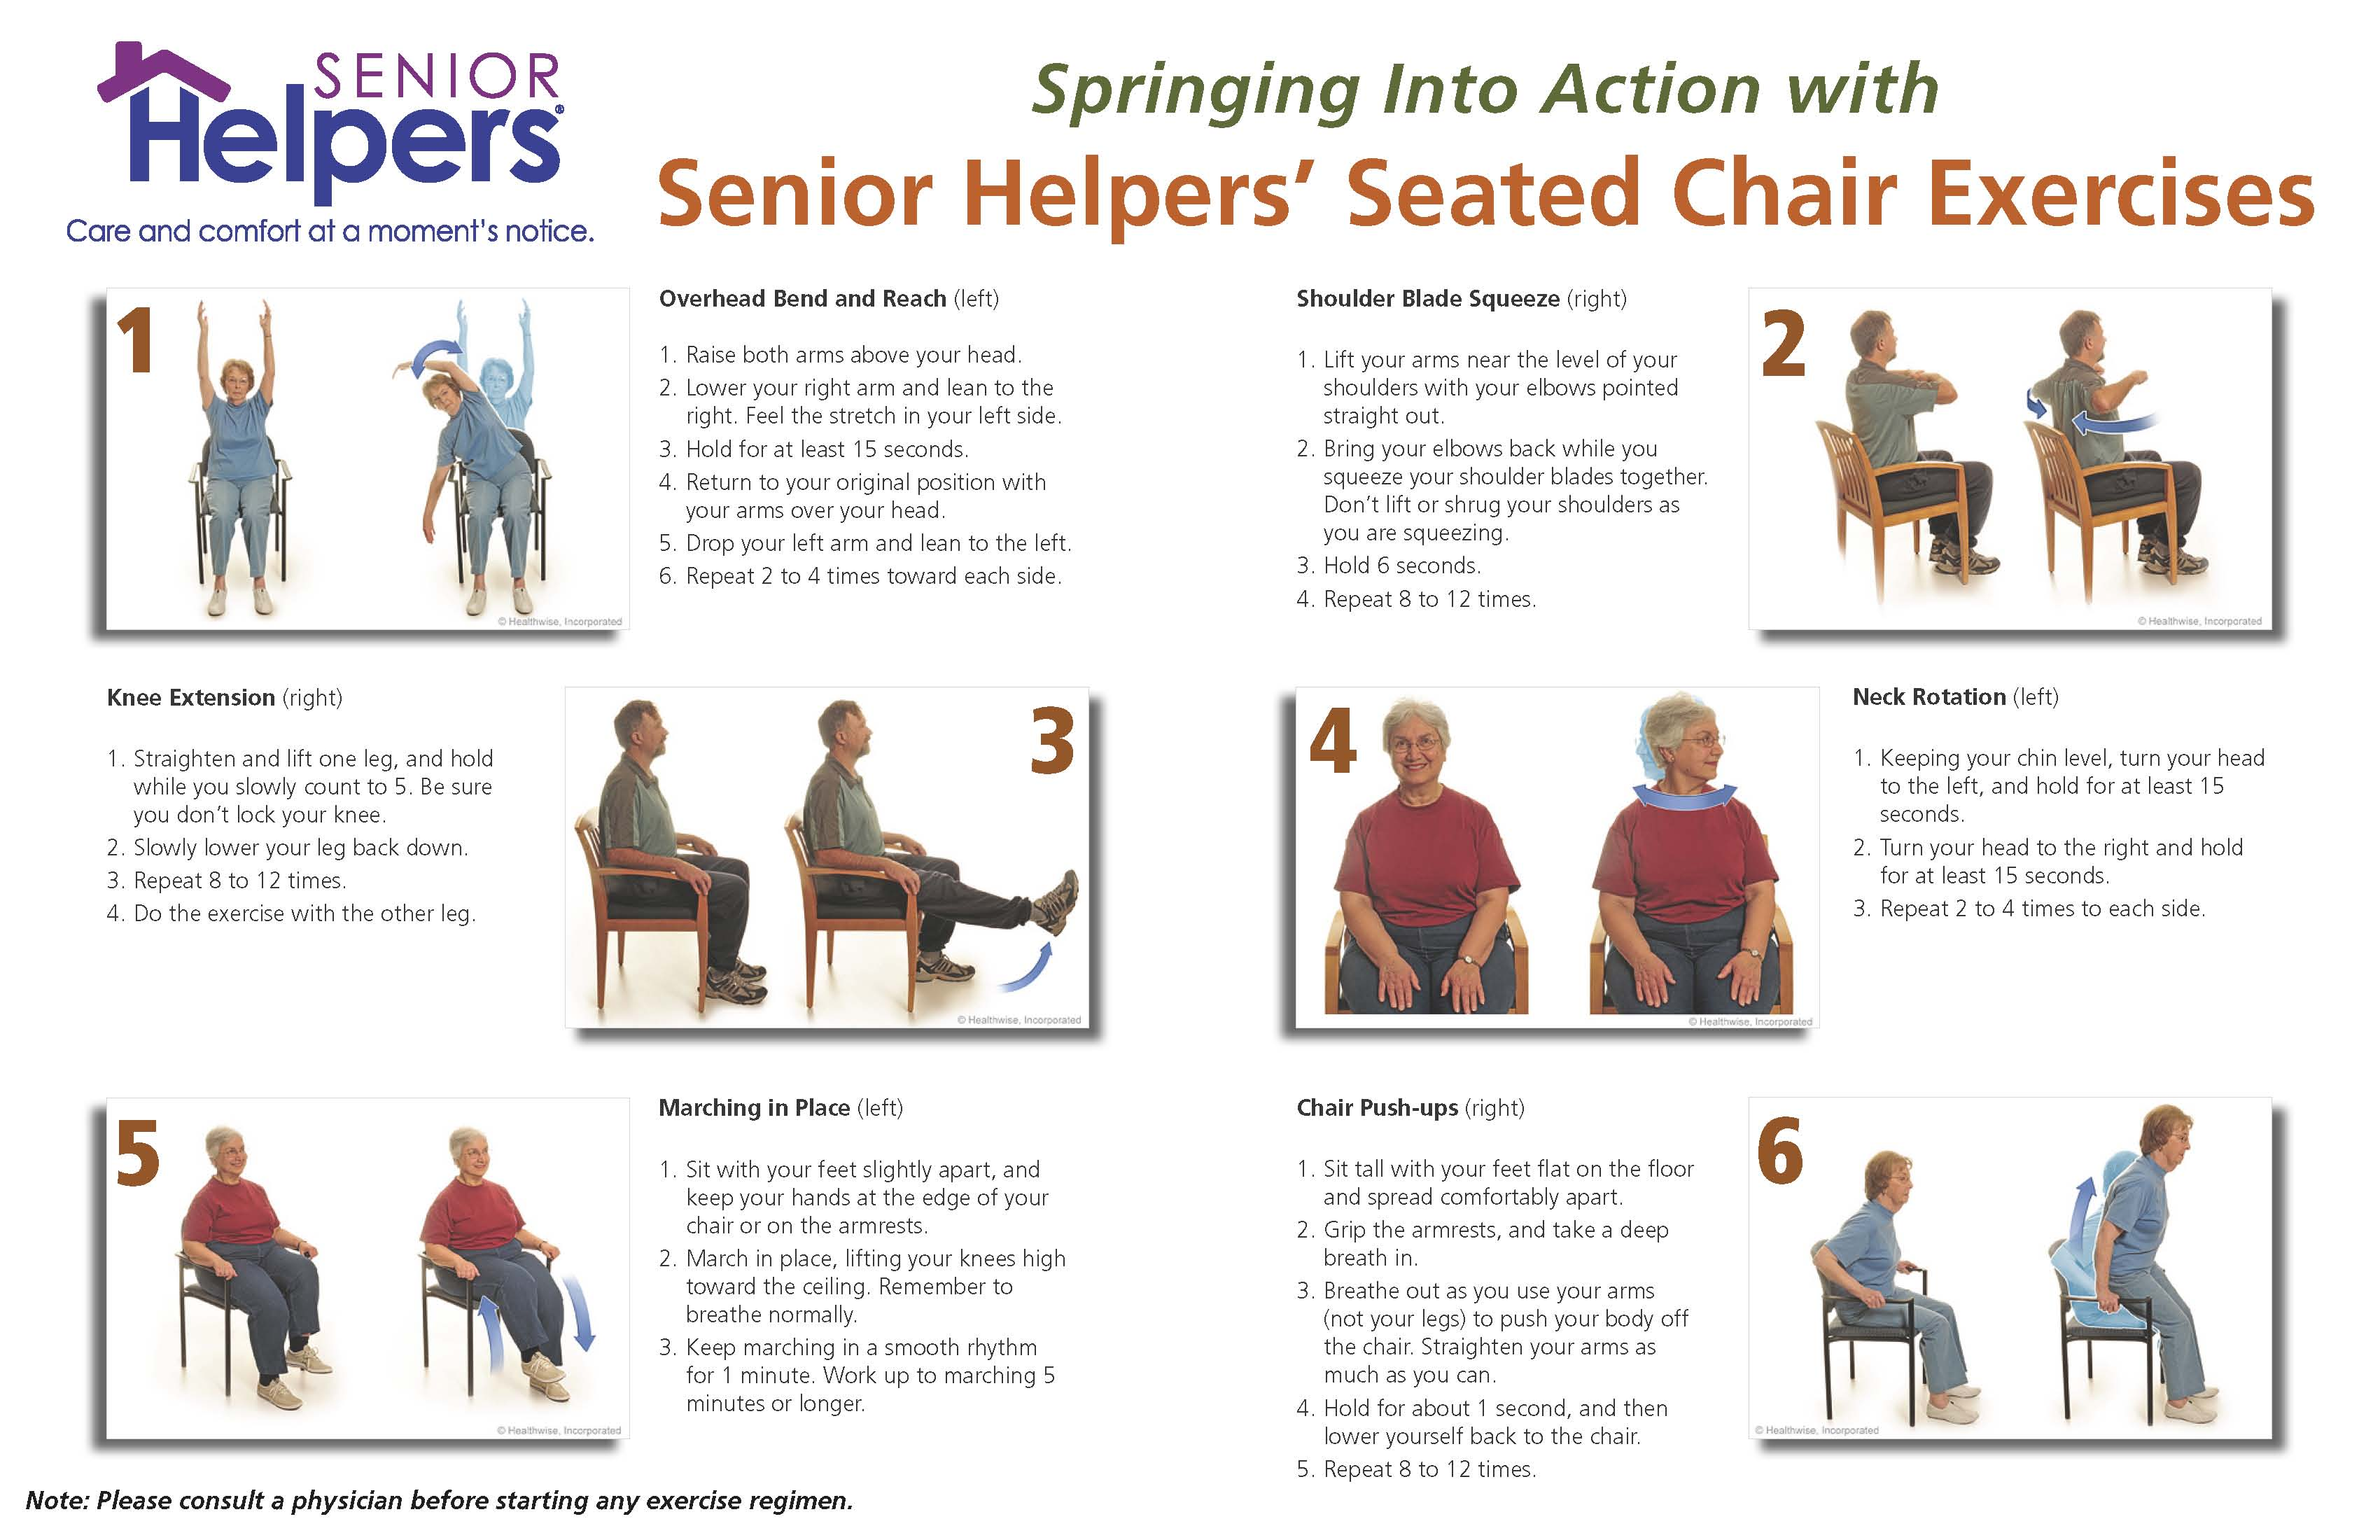 Seated Leg Exercises For Seniors With Pictures